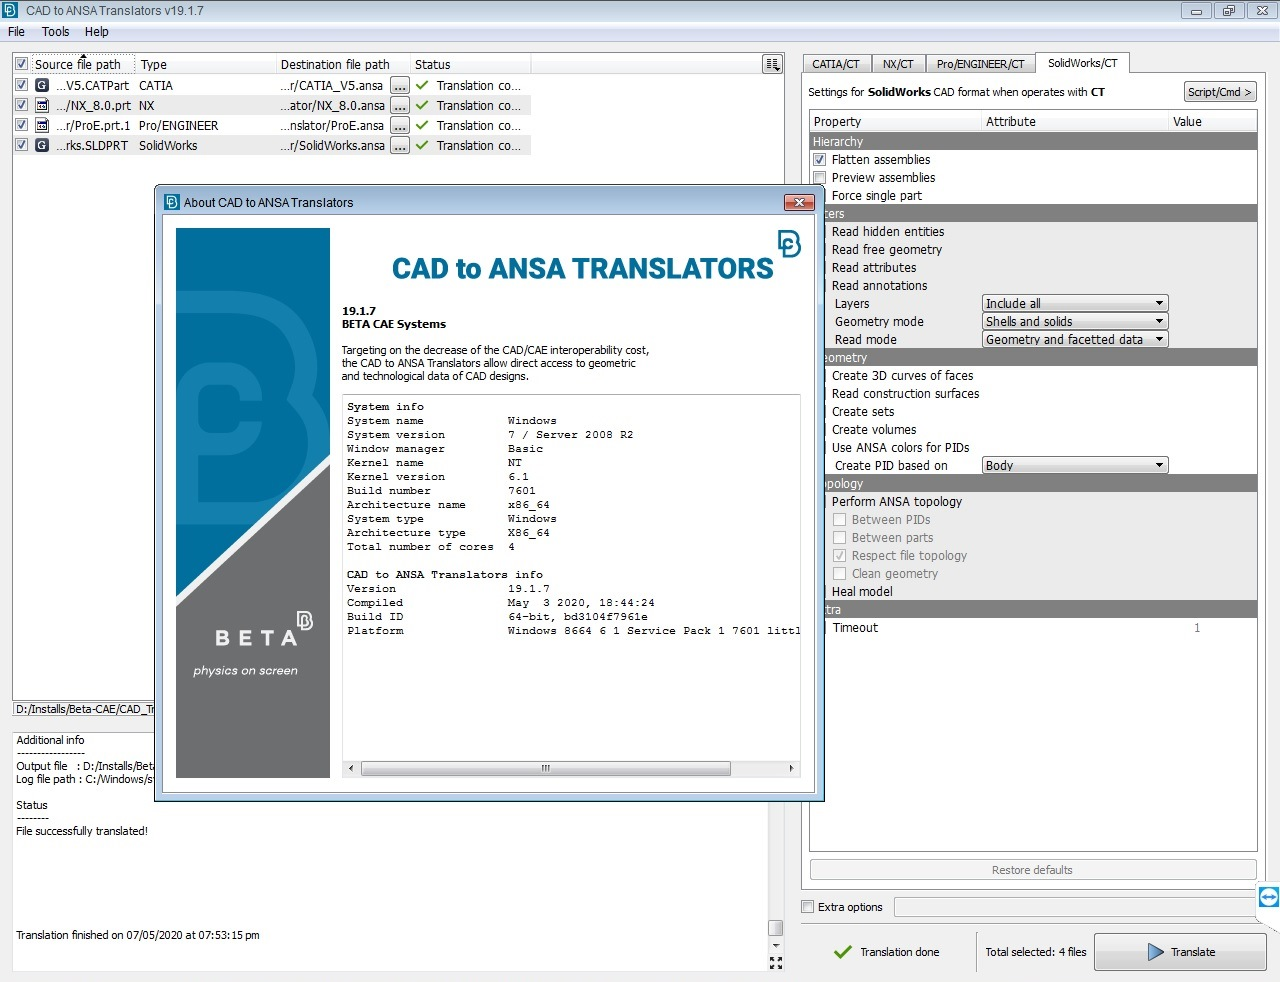 Working with BETA-CAE Systems v19.1.7 CAD to NASA translators